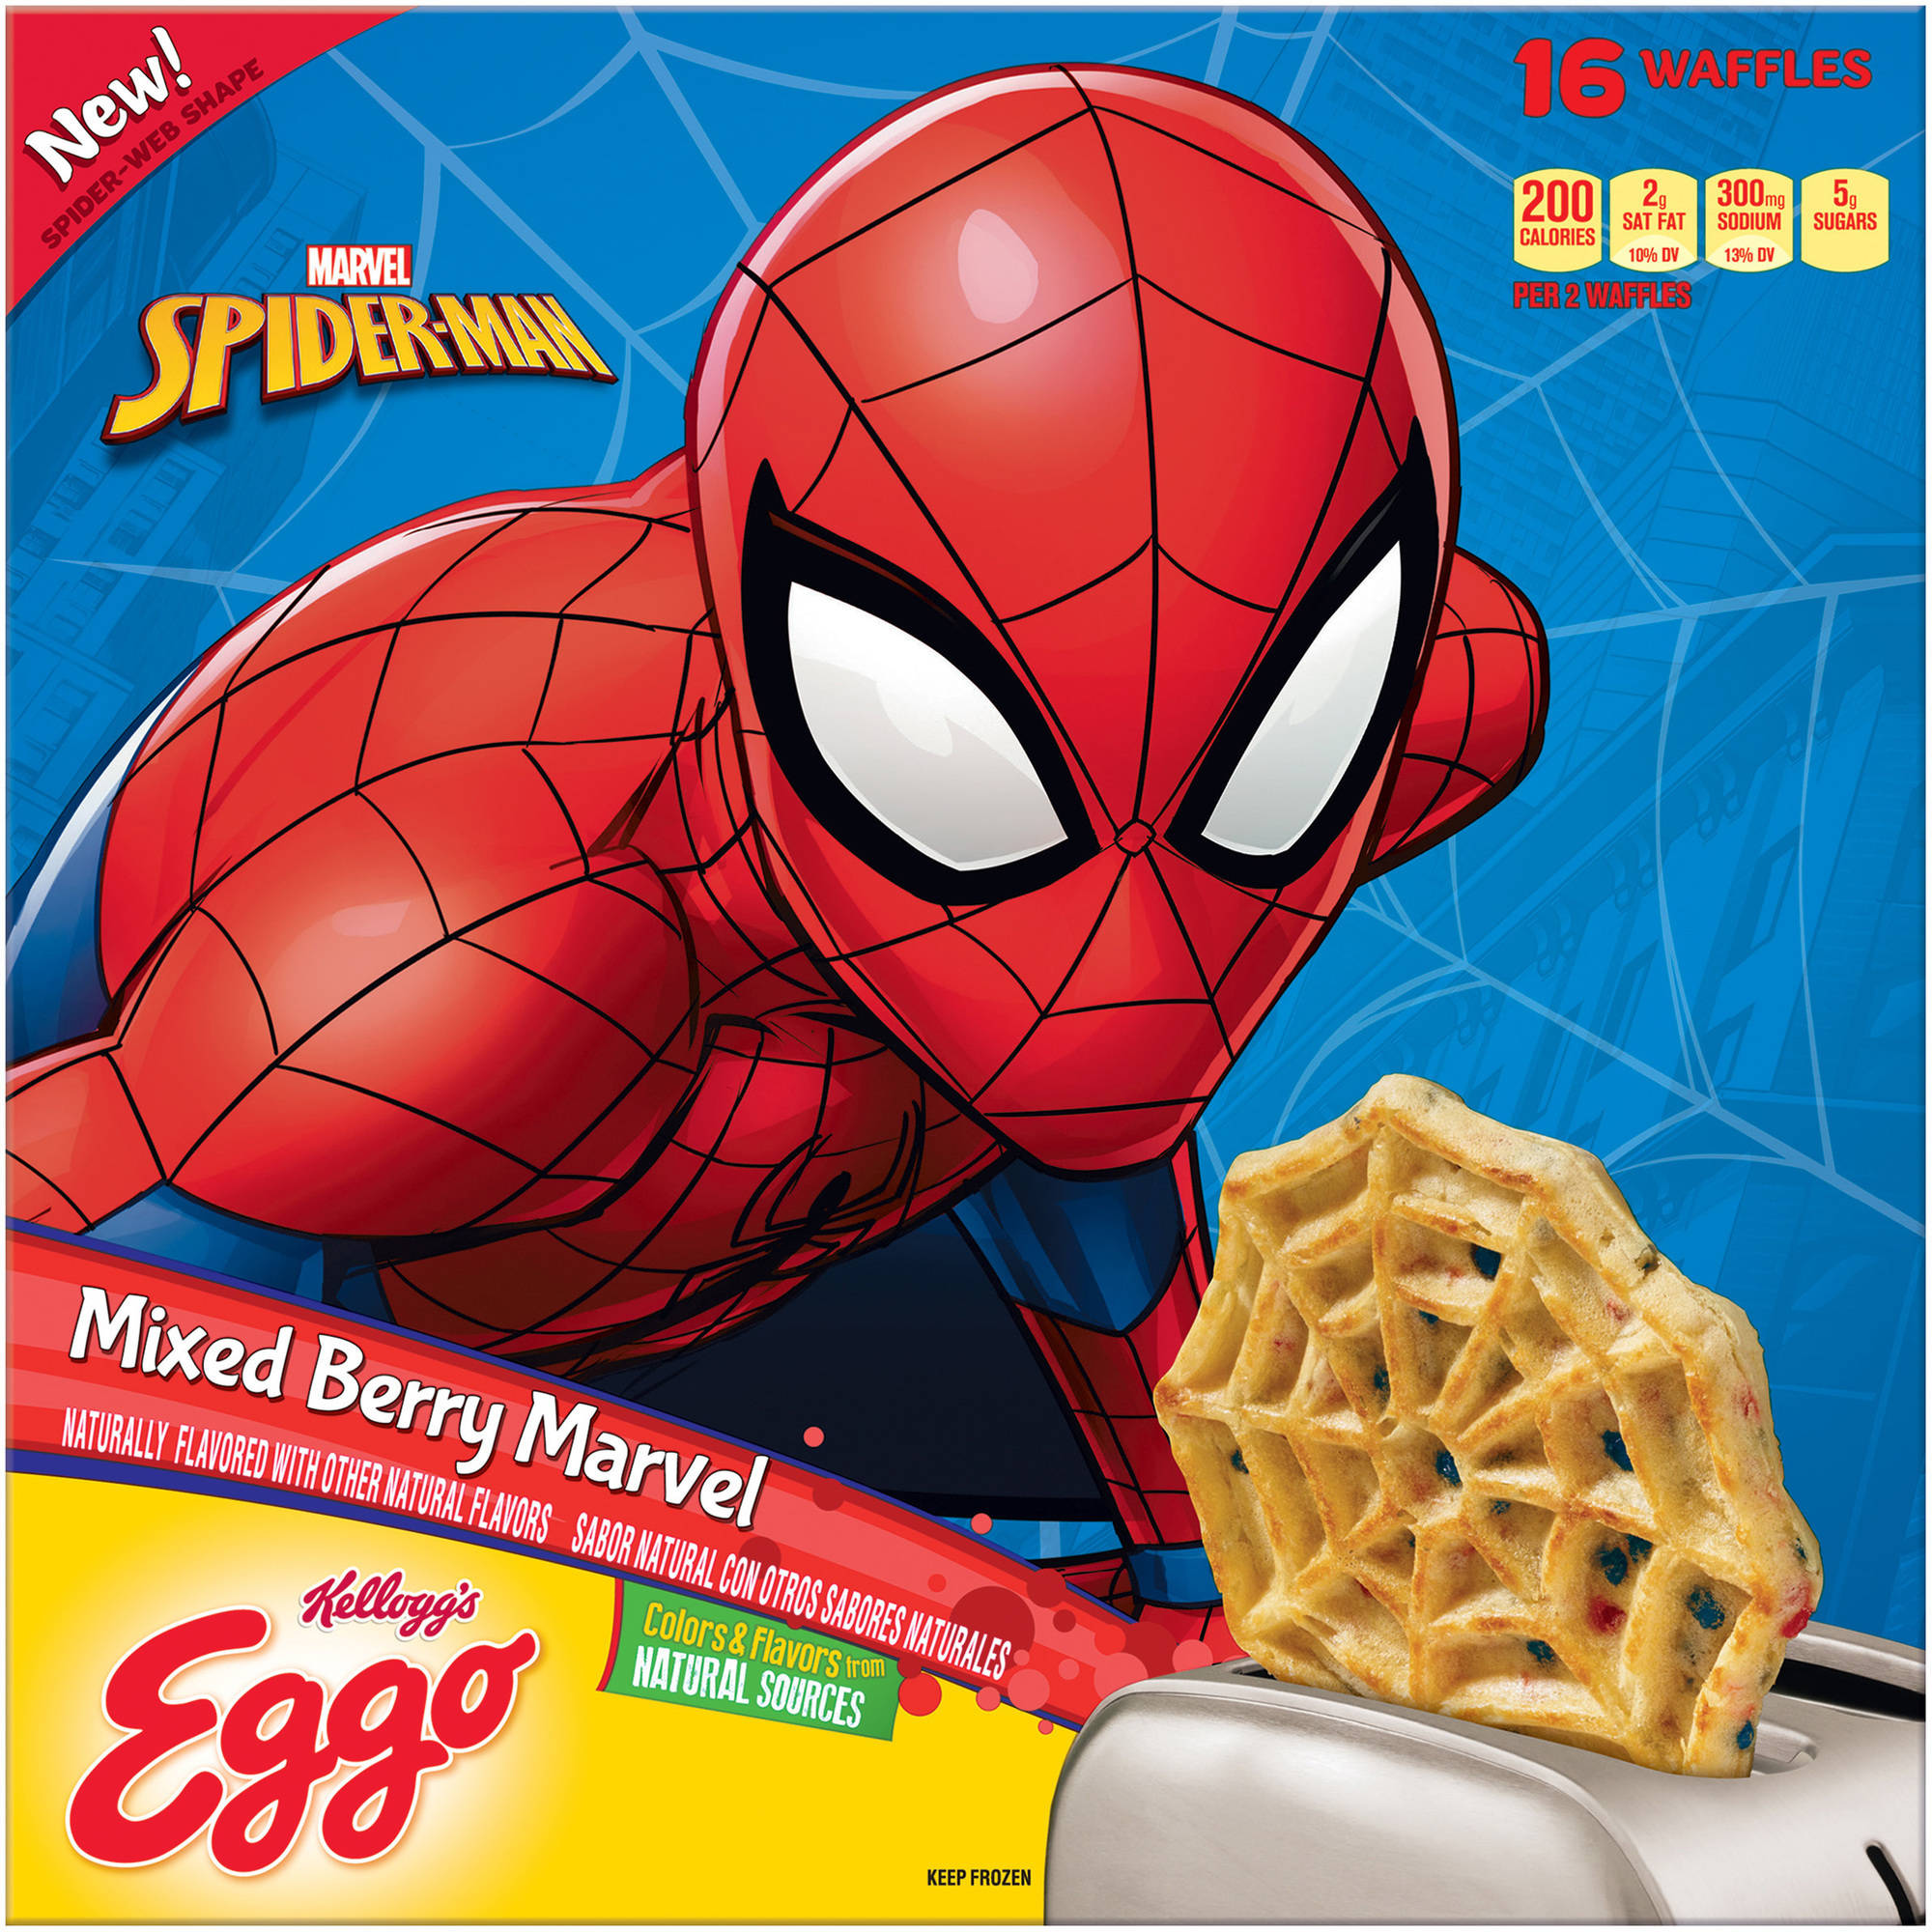 Kellogg's Eggo Limited Edition Mixed Berry Marvel Waffles, 16 count, 19.7 oz